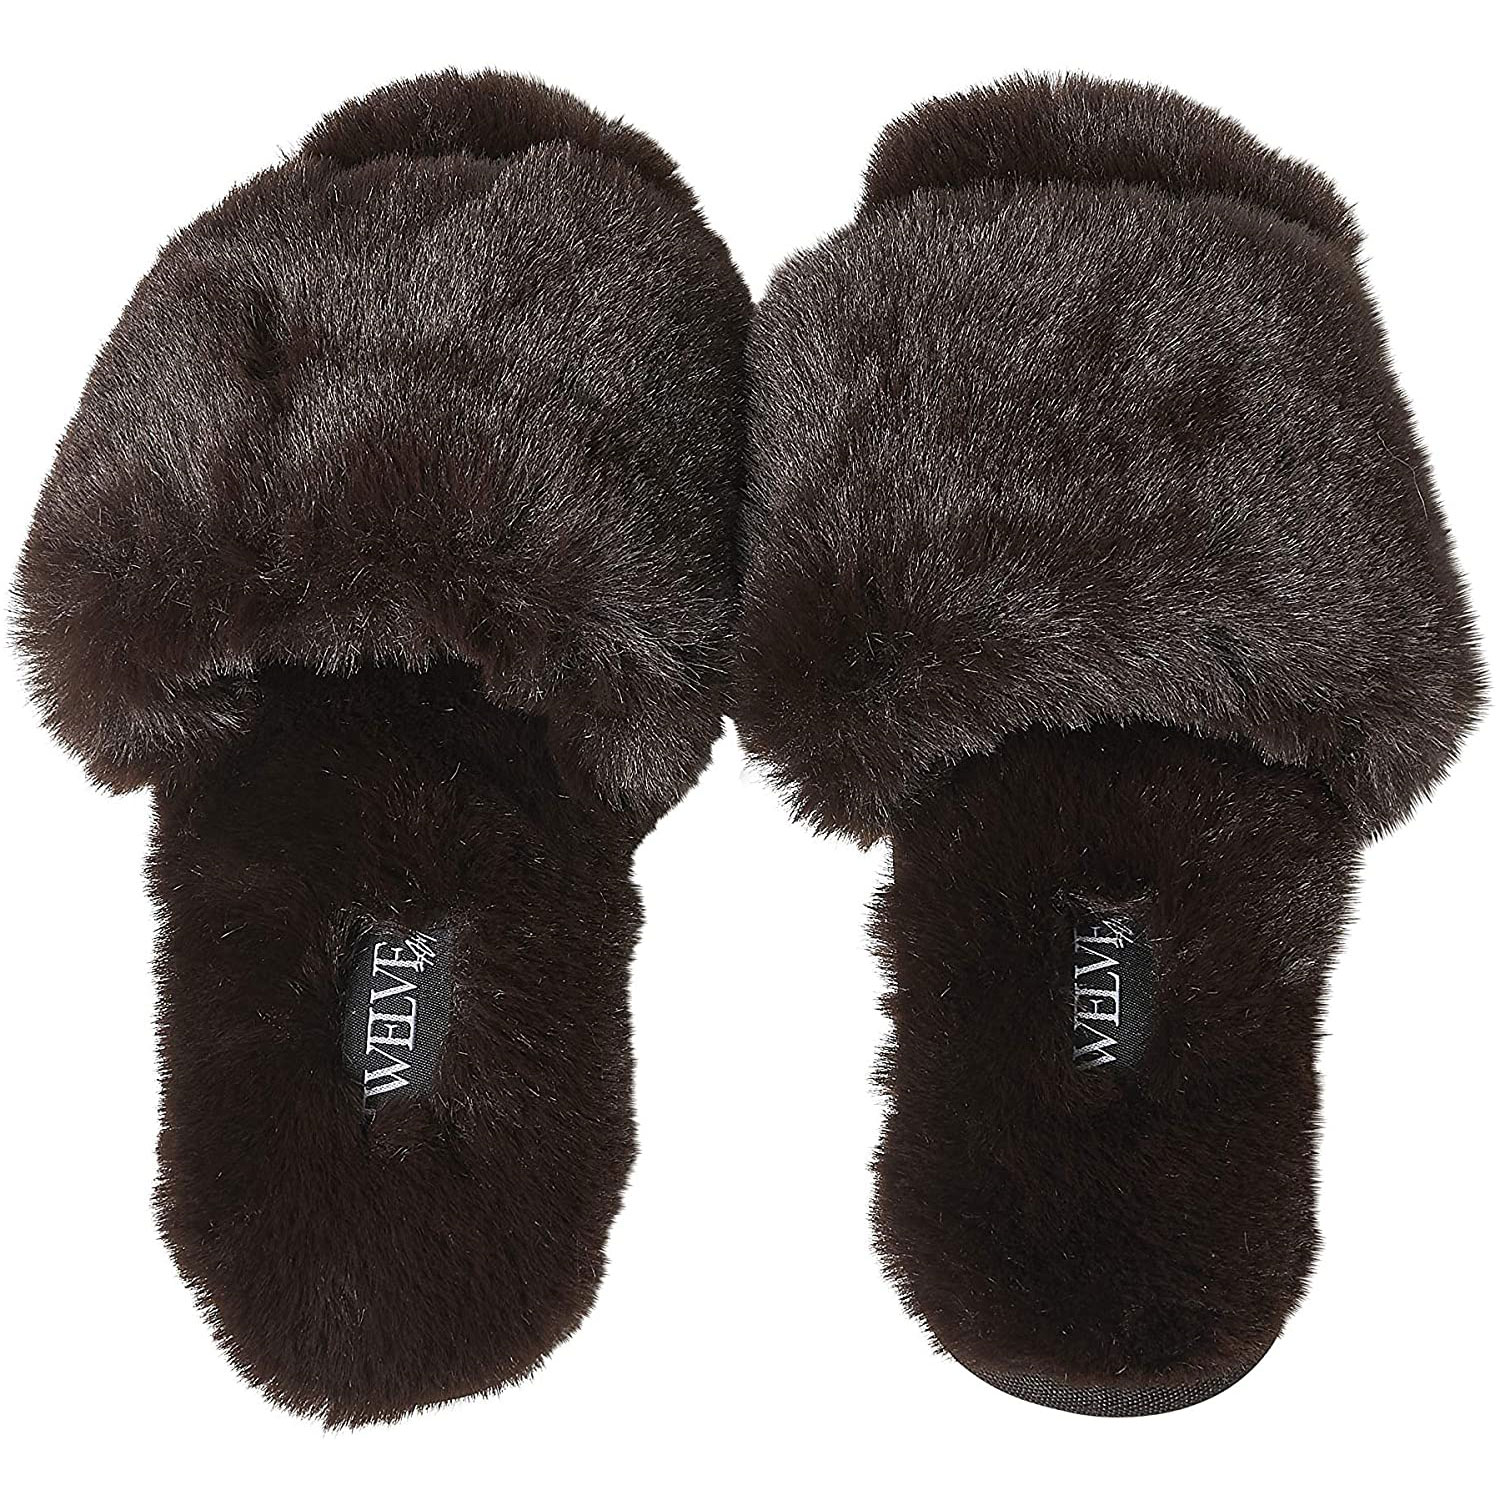 twelve am co so good fluffy slippers